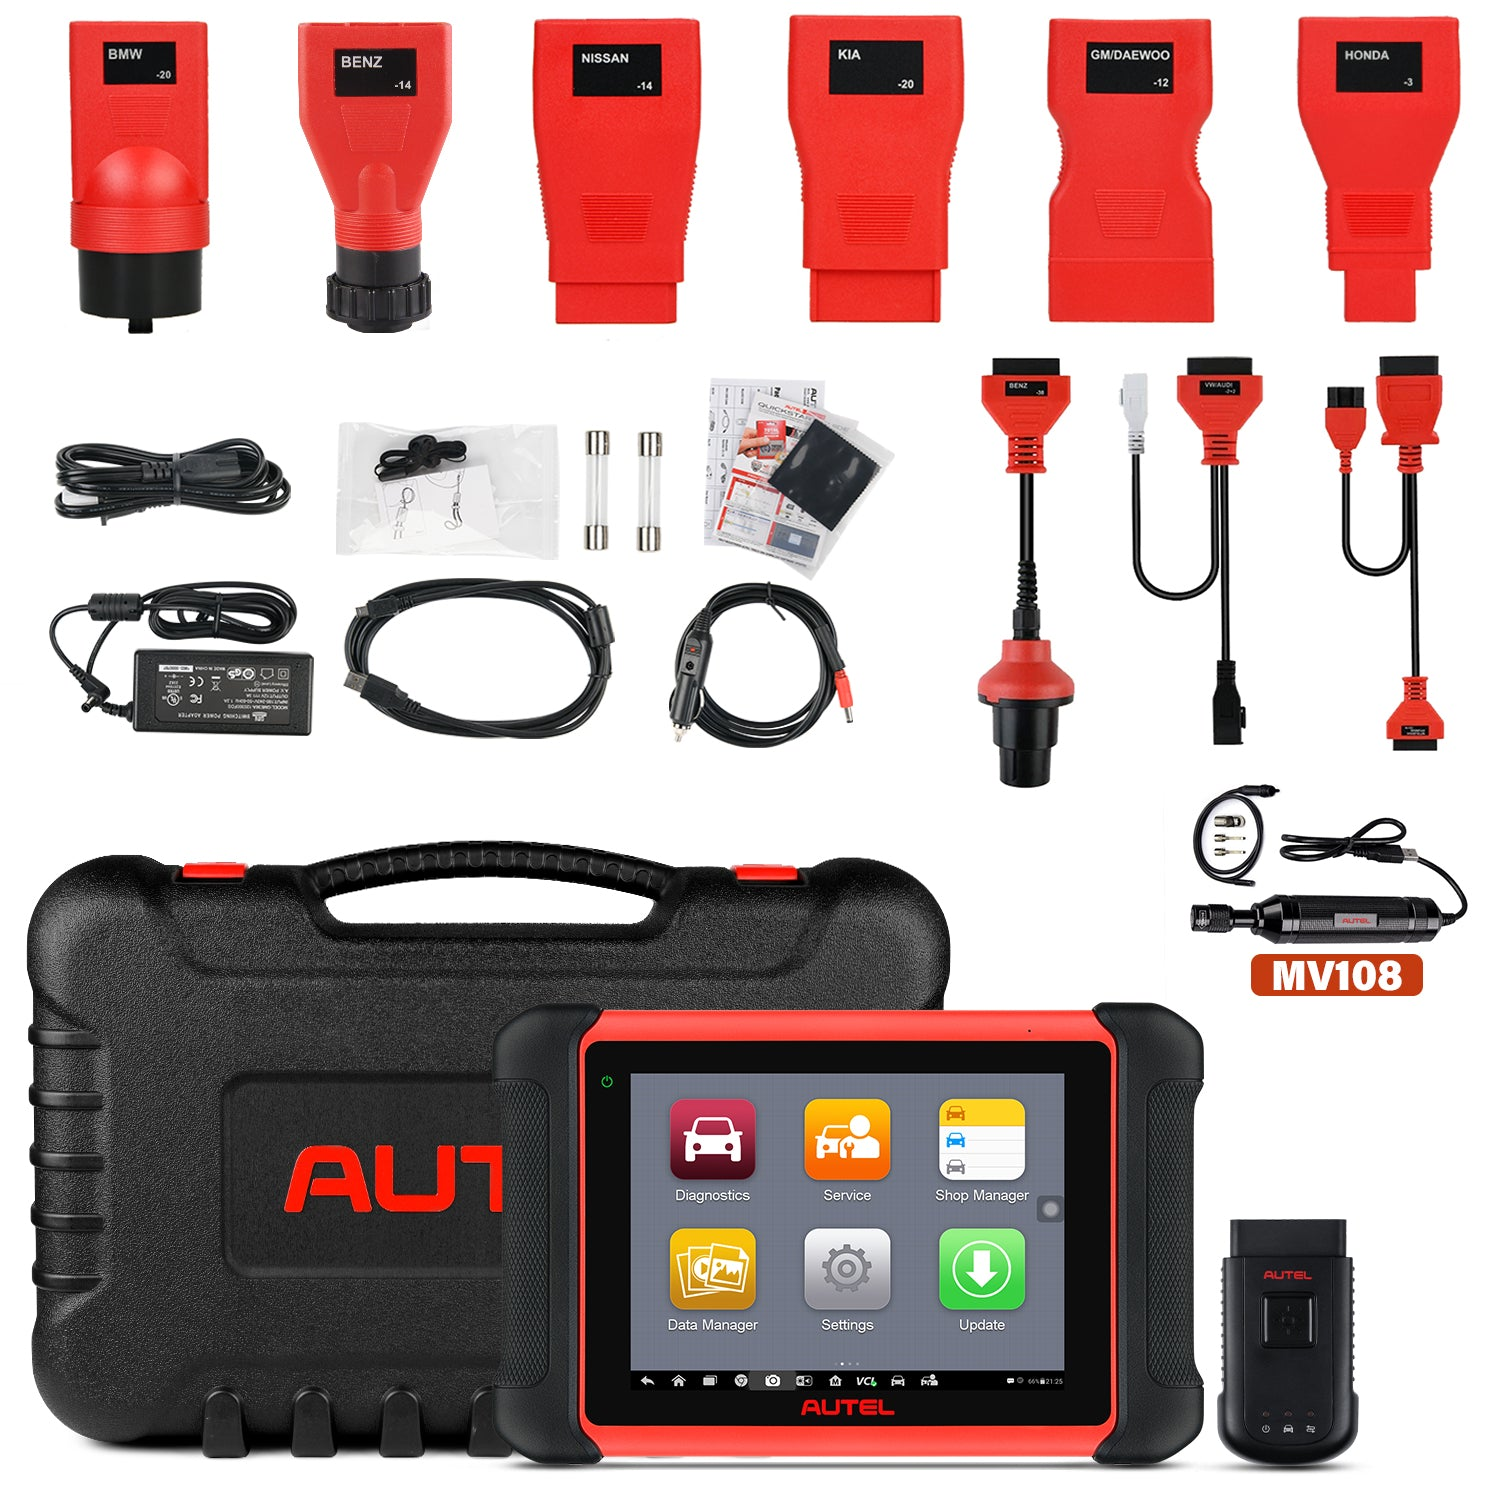 Autel MK906BT Package Content